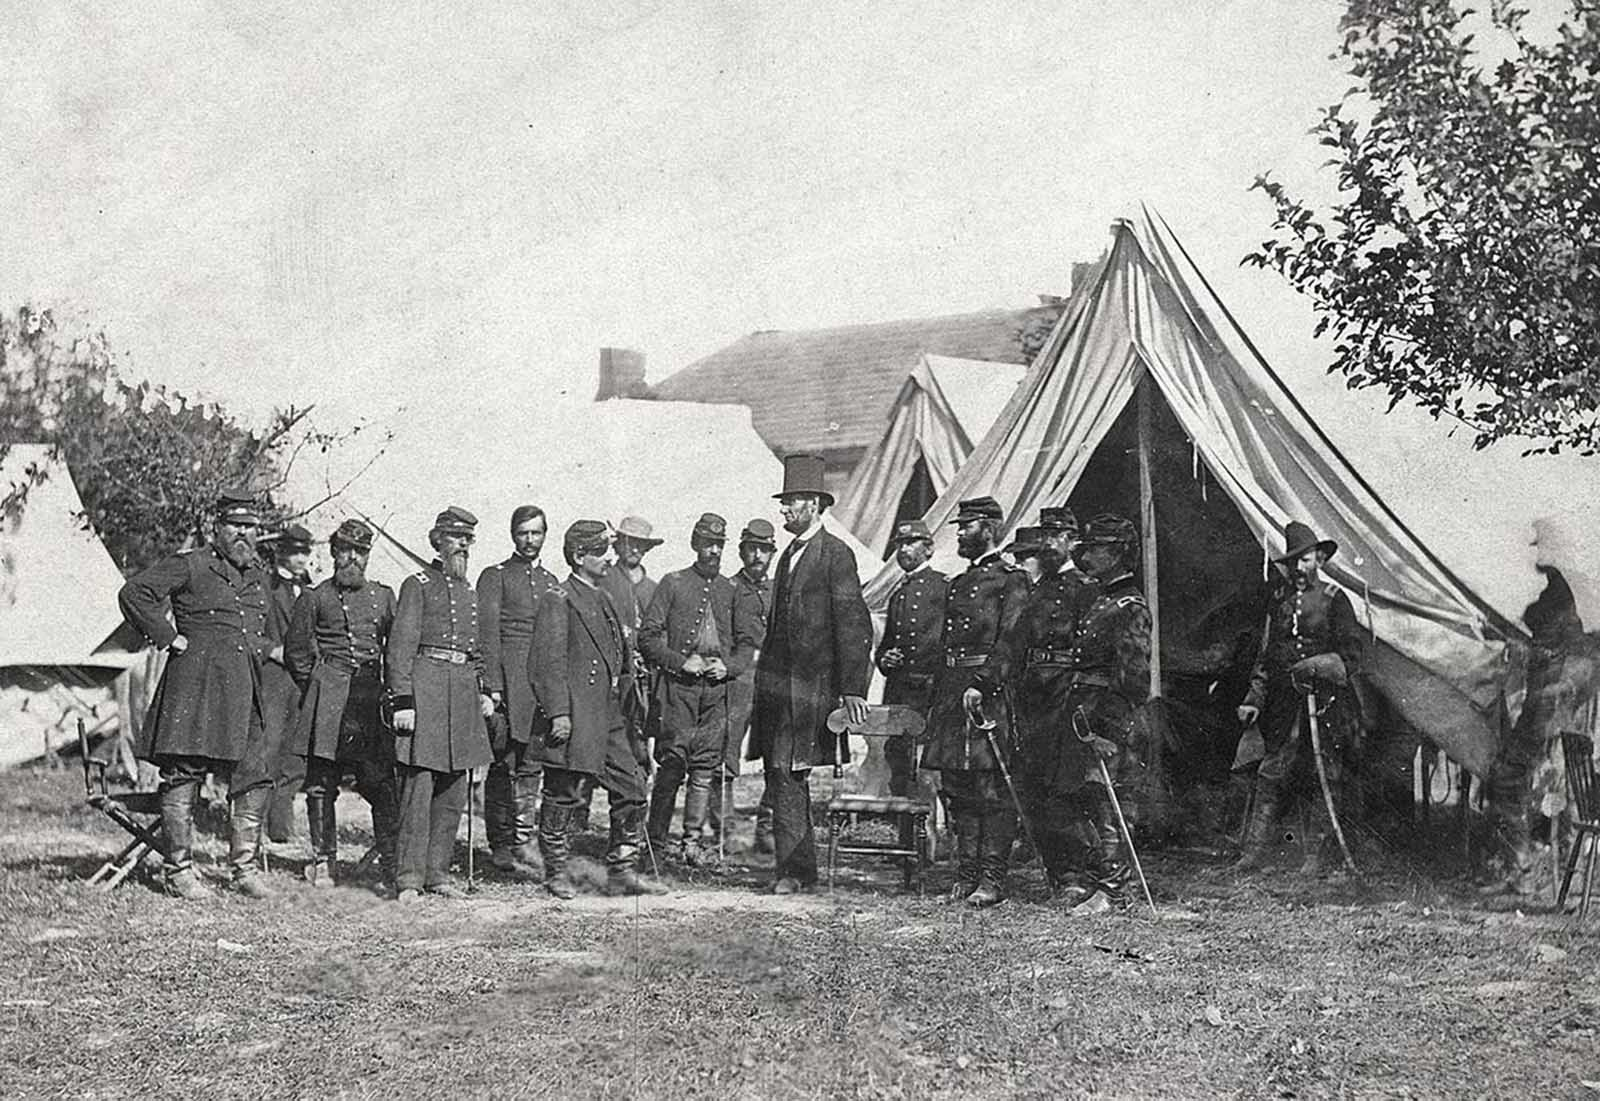 Maryland, Antietam, President Lincoln on the Battlefield Alexander Gardner, October 1862.